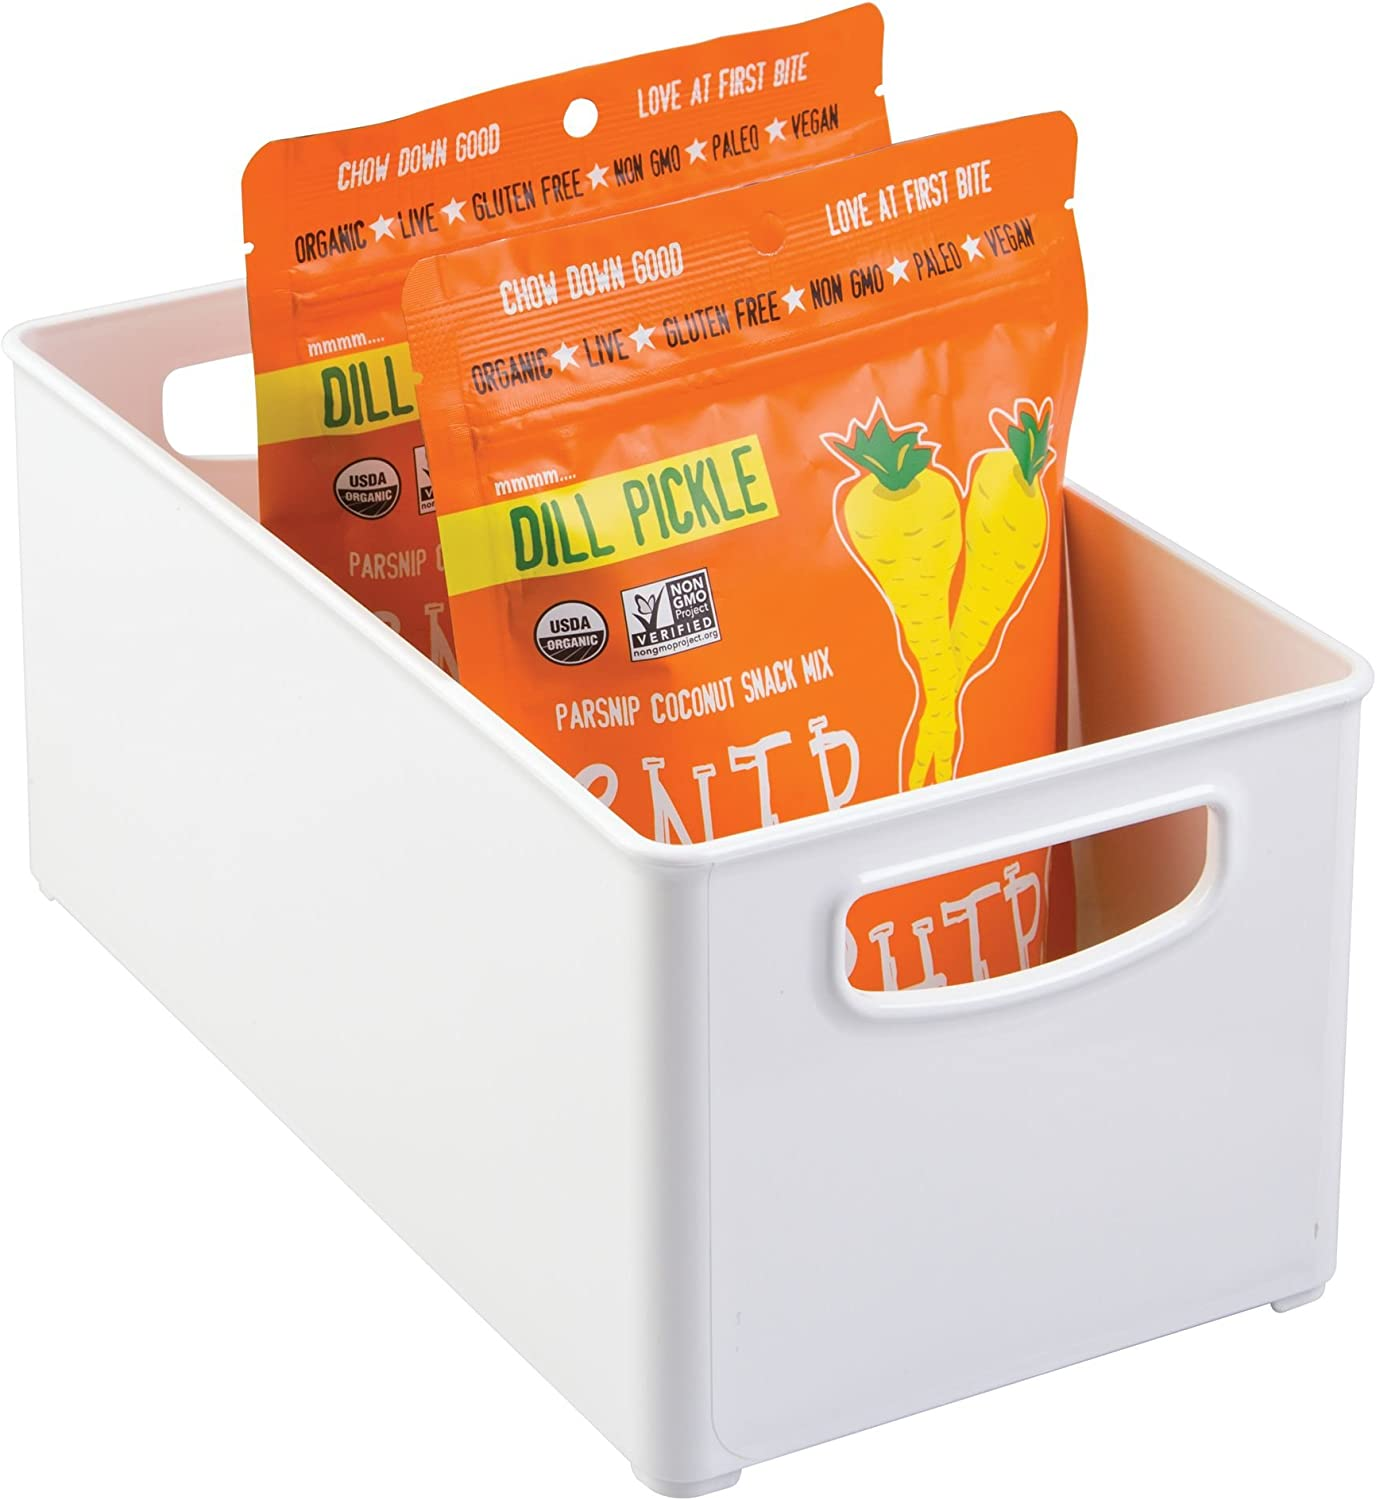 iDesign Kitchen Binz BPA-Free Plastic H Max Genuine Free Shipping 87% OFF Organizer Stackable with